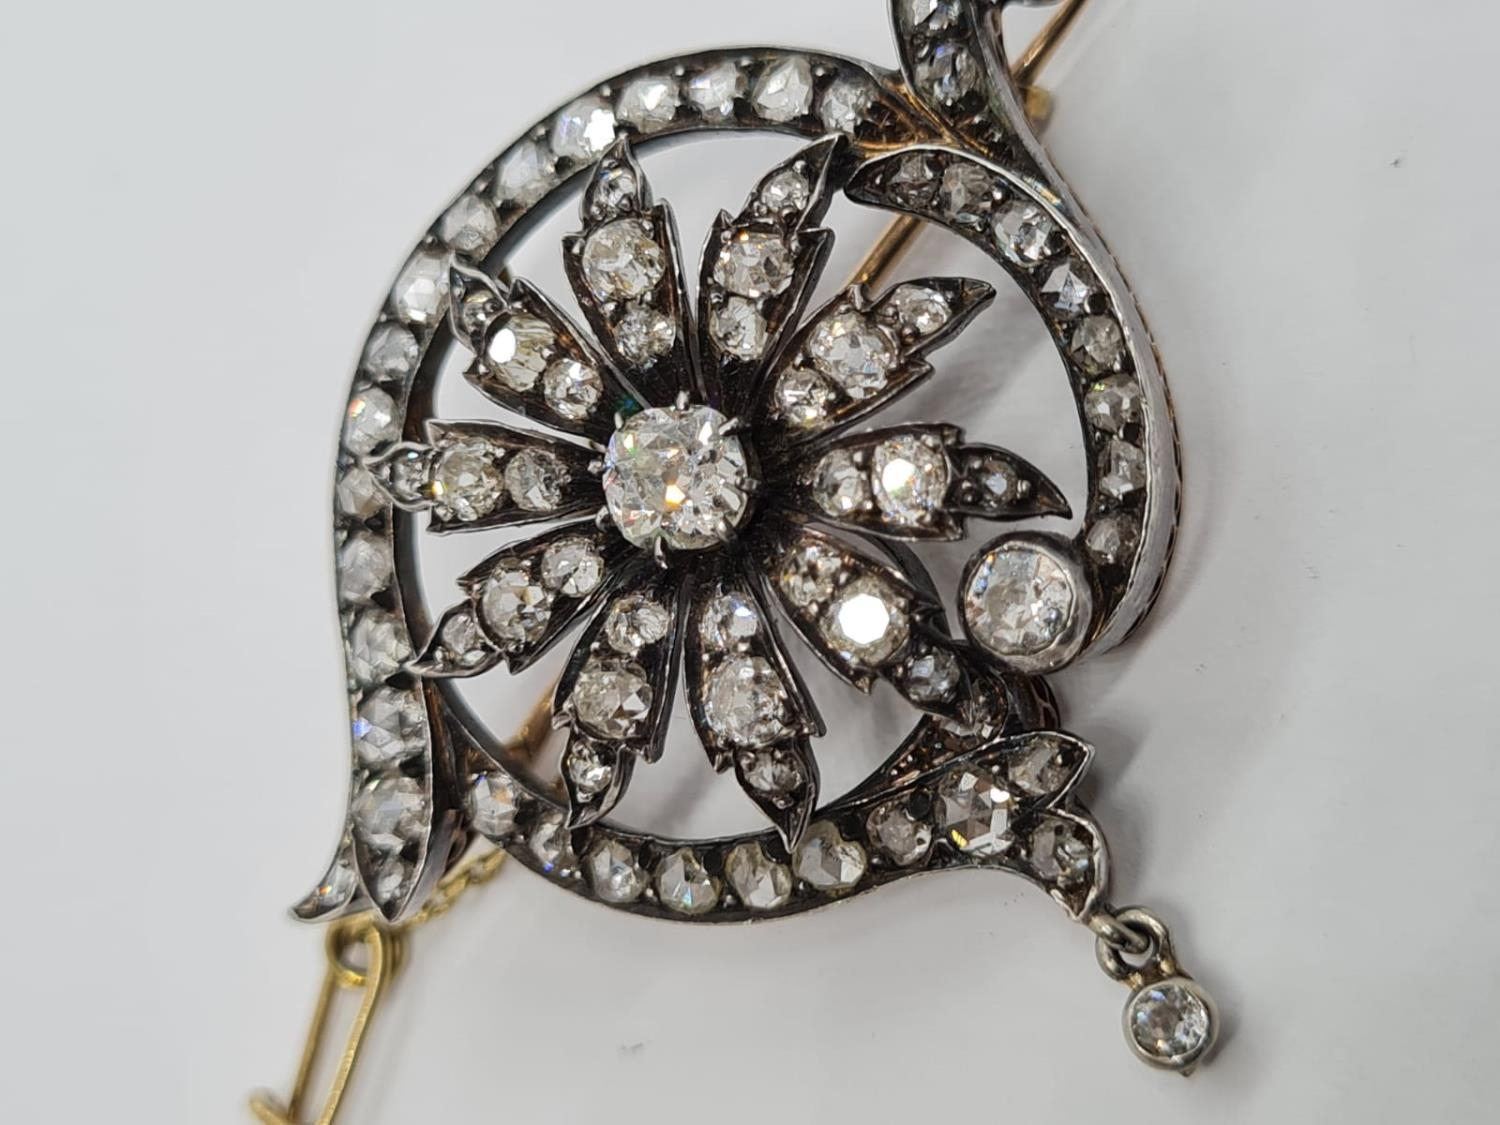 Antique Silver and Gold Diamond BROOCH with 4 ct of top quality Diamonds. 12g 4.5cm width - Image 2 of 5